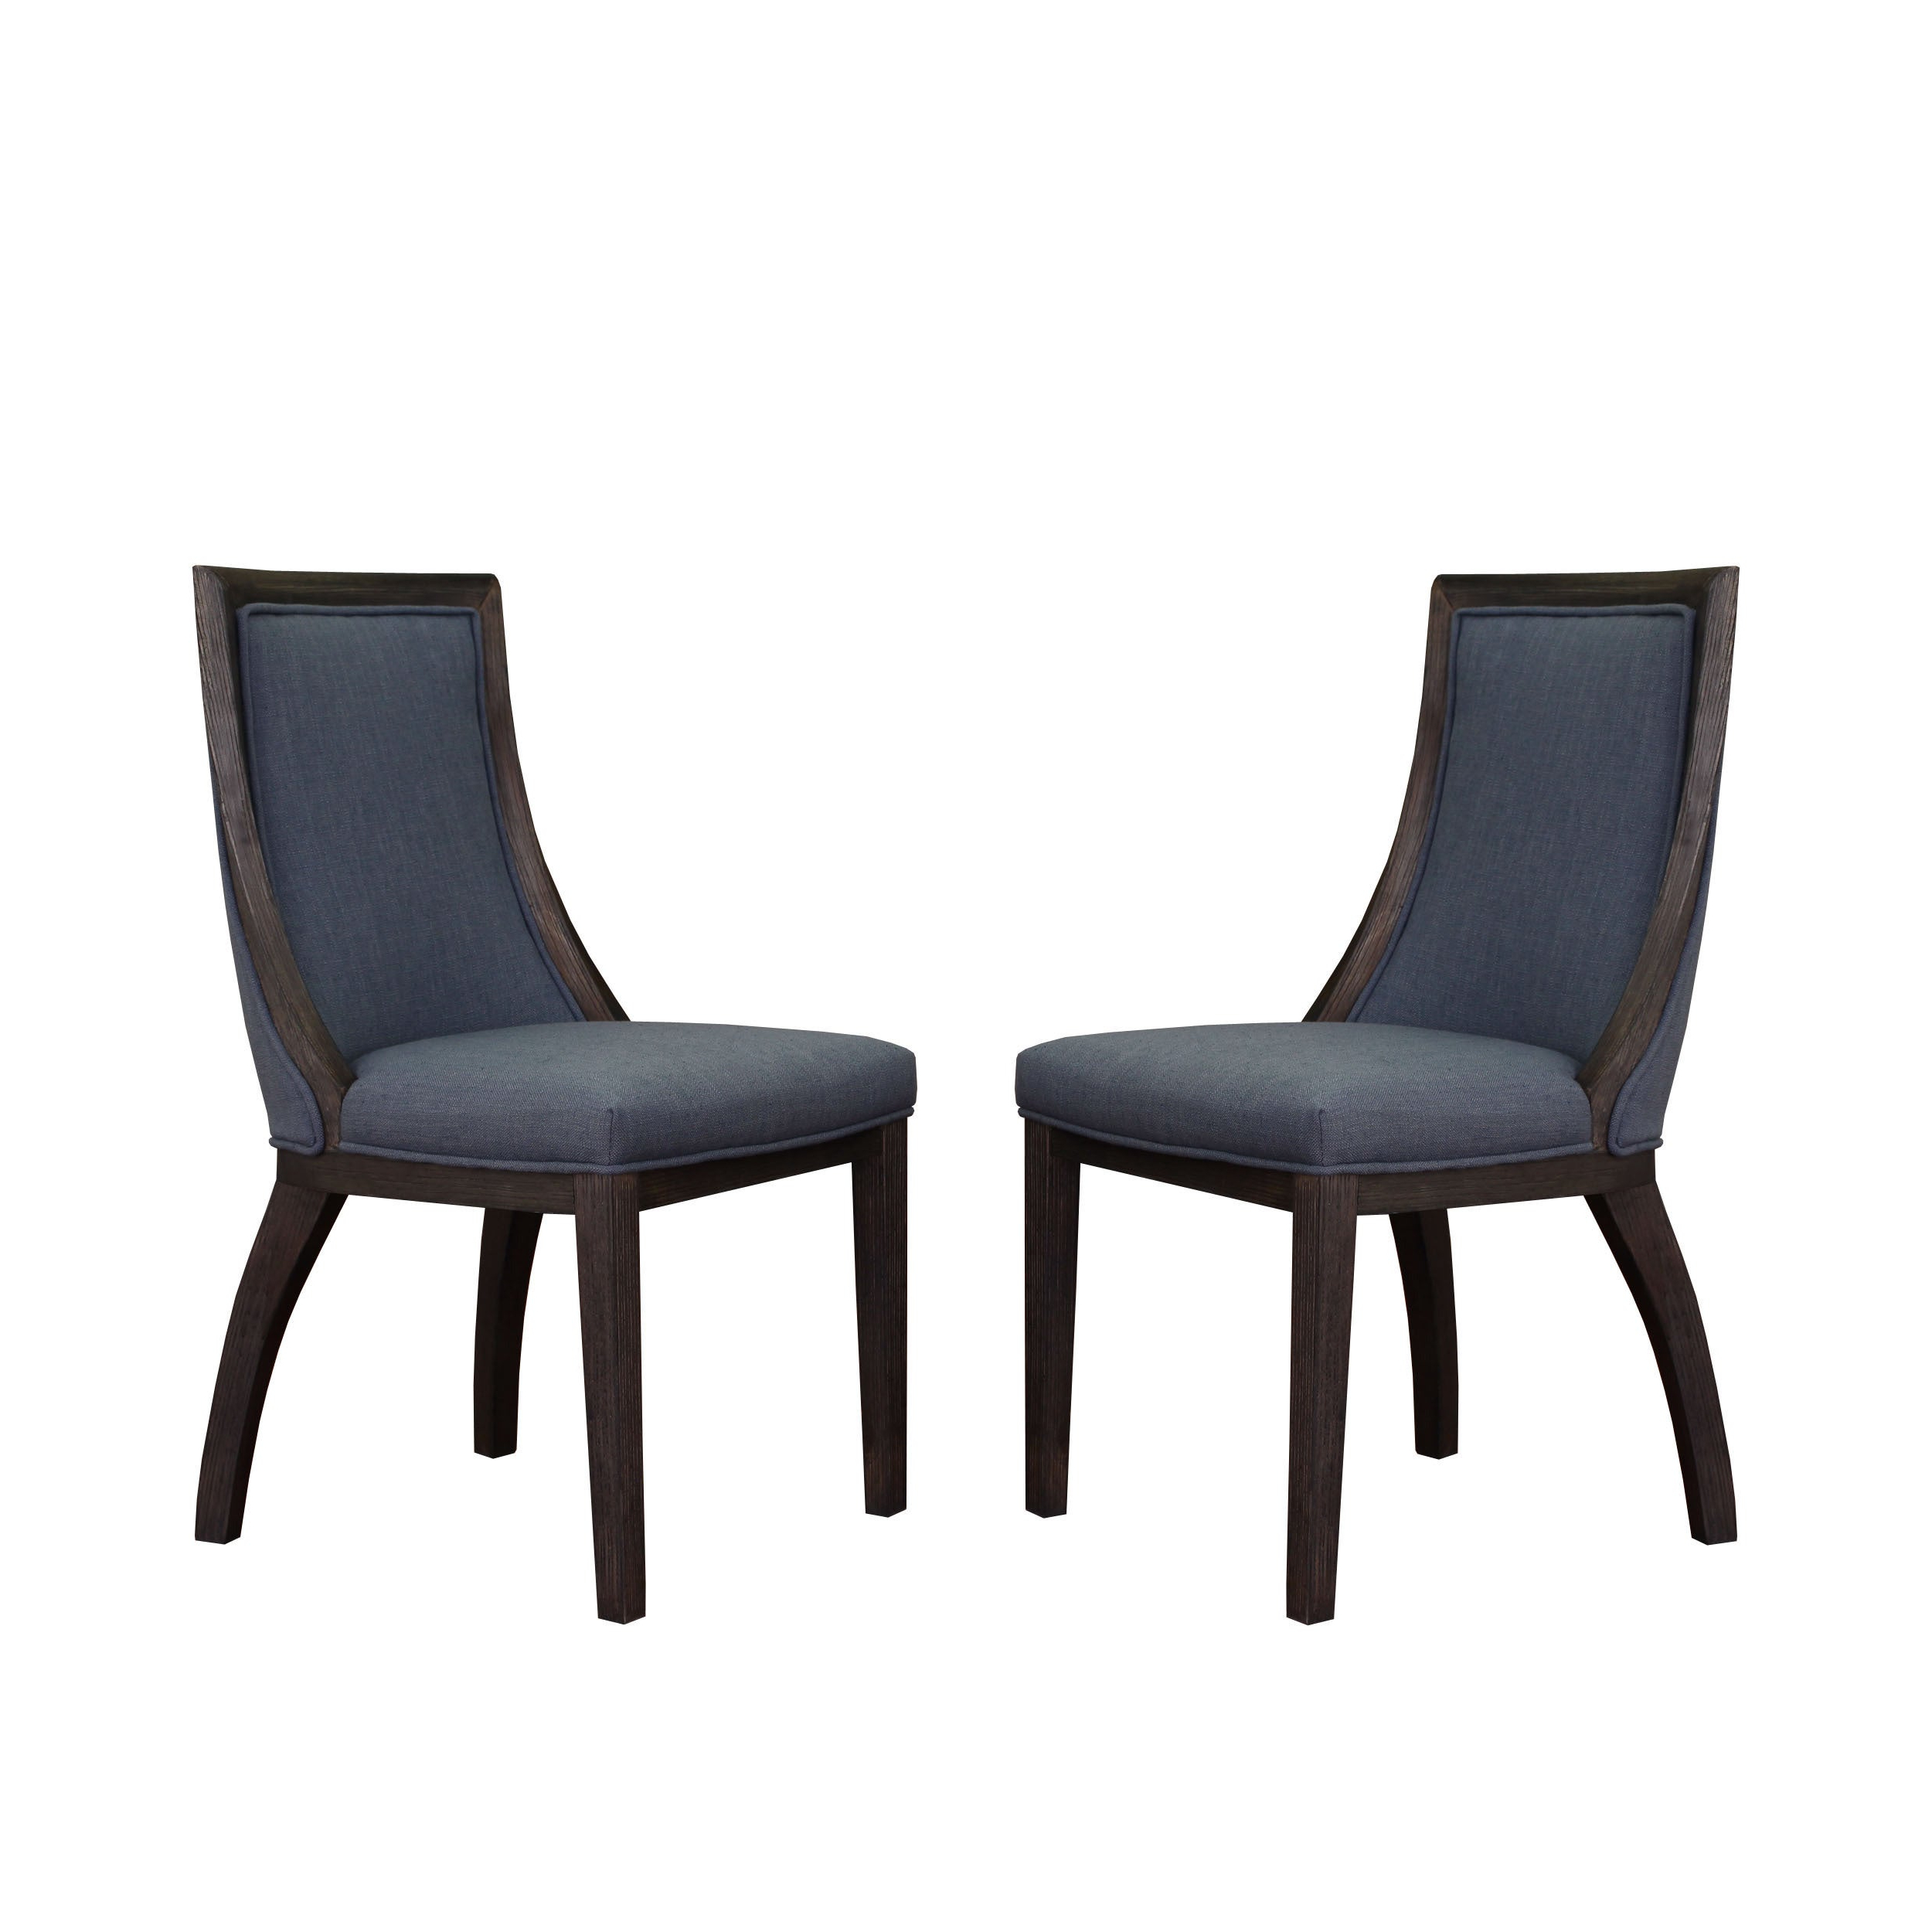 The Gray Barn Park Avenue Austria Navy Linen Dining Chair (set Of 2) Intended For Latest Madison Avenue Tufted Cotton Upholstered Dining Chairs (set Of 2) (View 8 of 20)